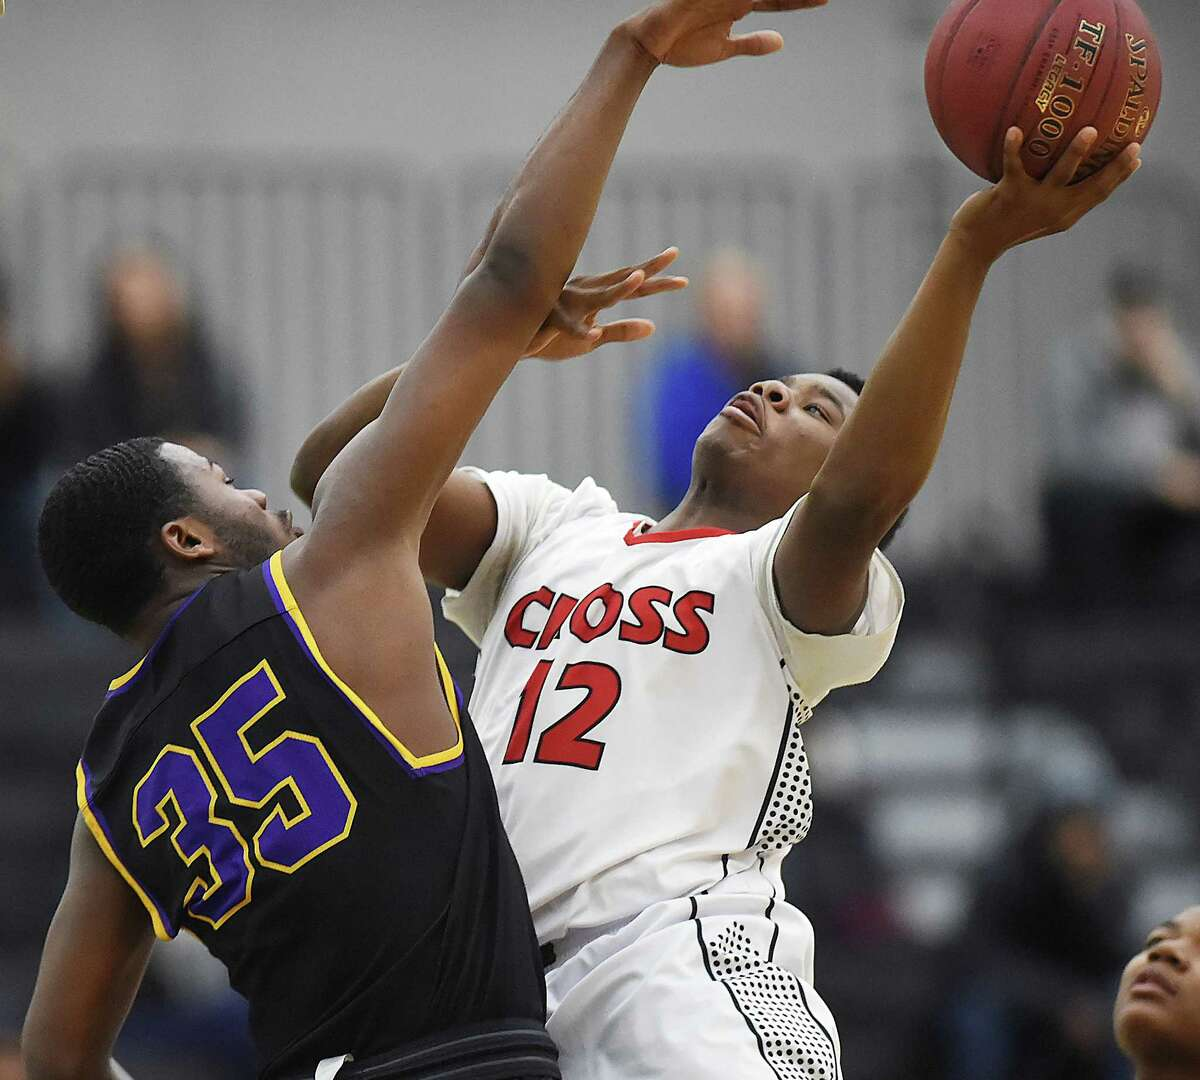 Wilbur Cross' Terrence Edwards elevates for a shot as Career's Jalen Jones defends, Wednesday, Jan. 17, 2018, at Floyd Little Athletic Center in New Haven. Wilbur Cross won, 57-50.